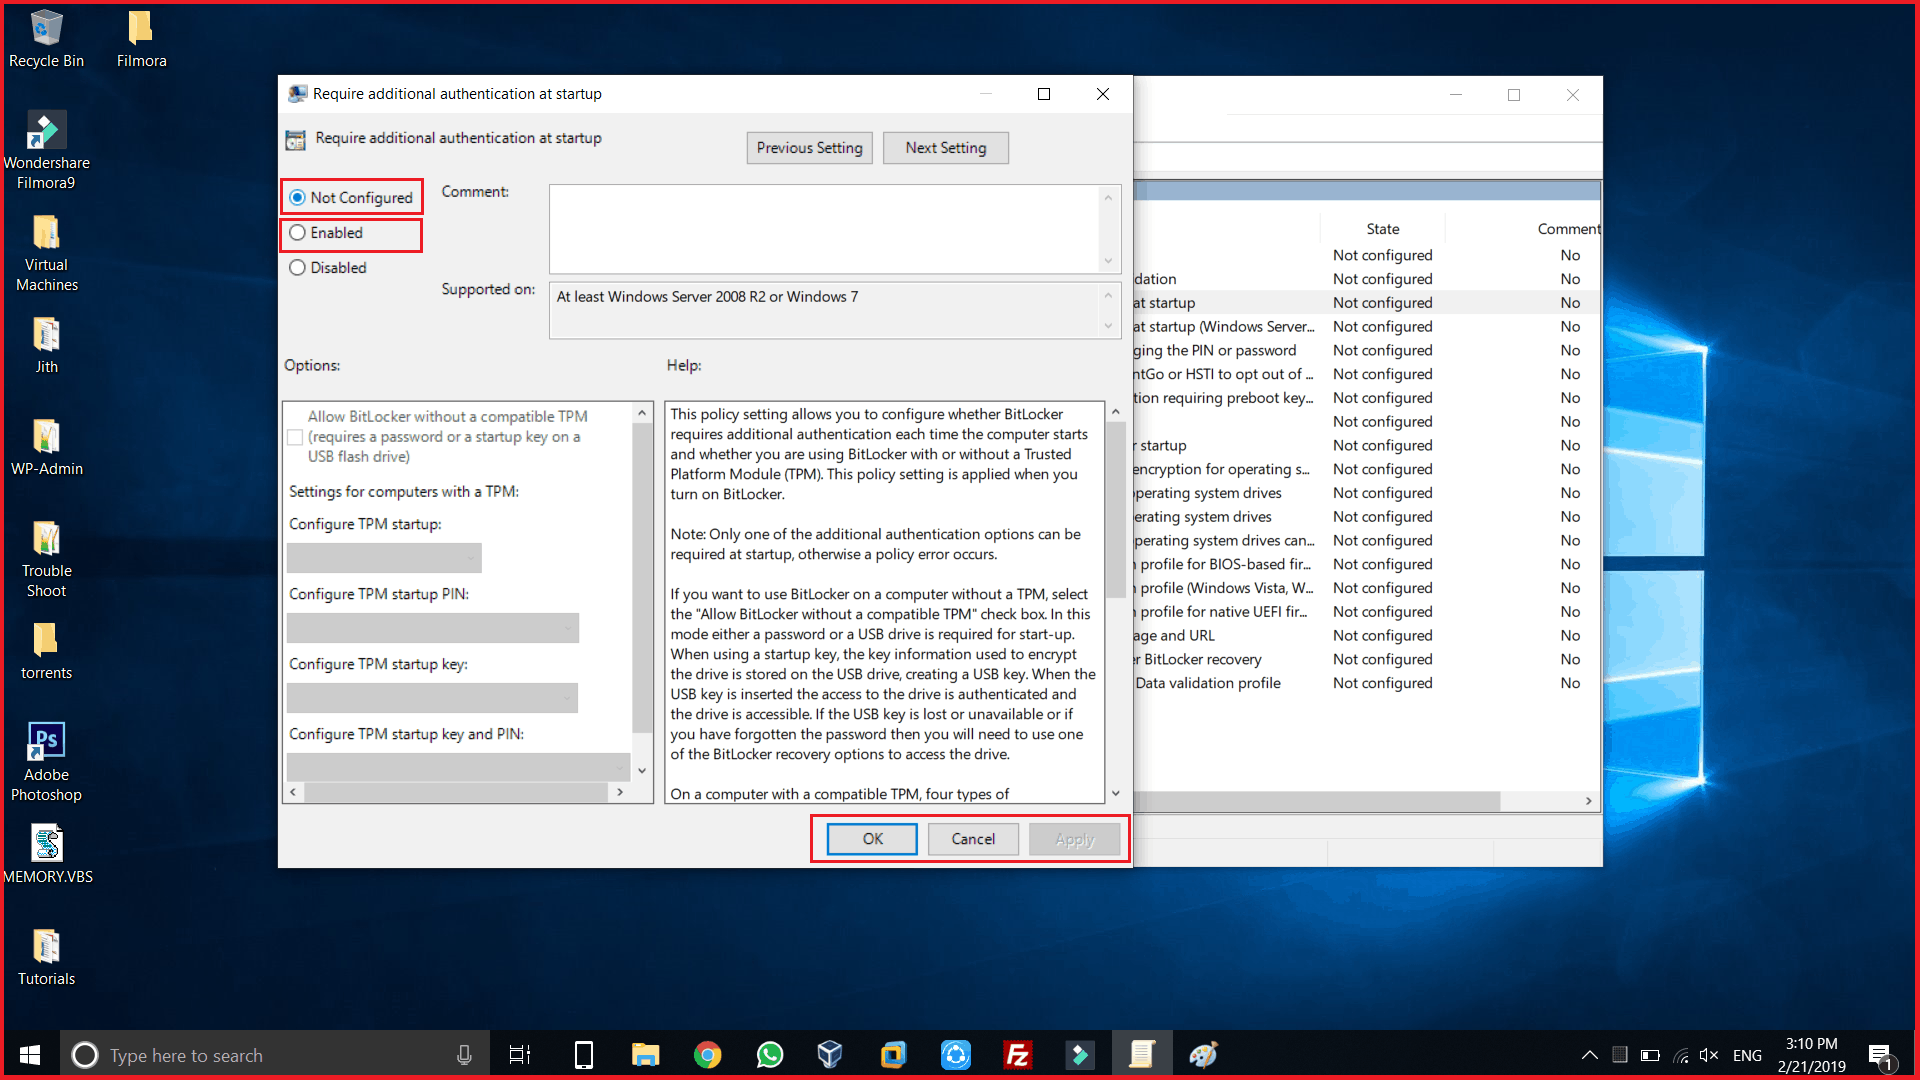 enable additional authentication at startup for bit locker